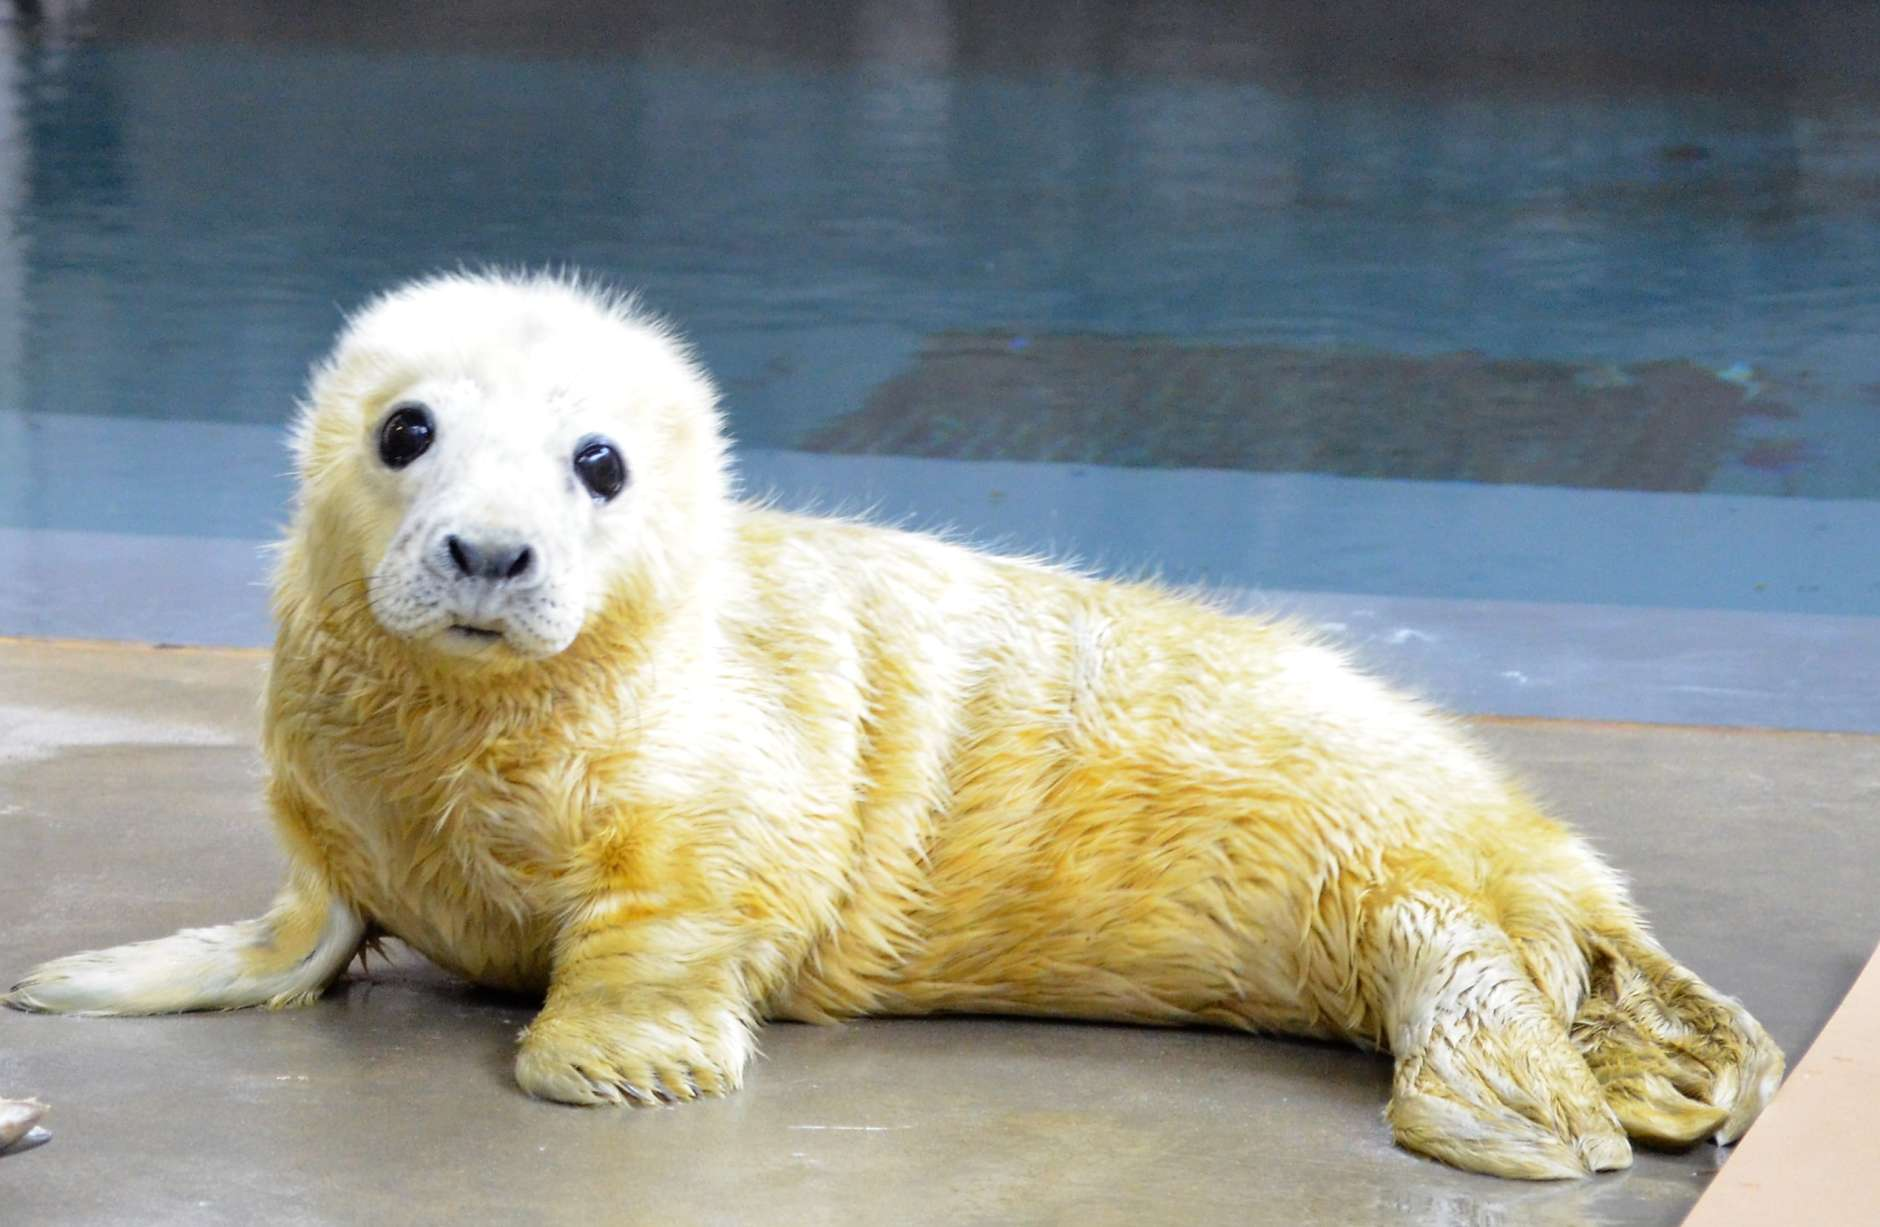 Color picture of a small, white seal pup on concrete.